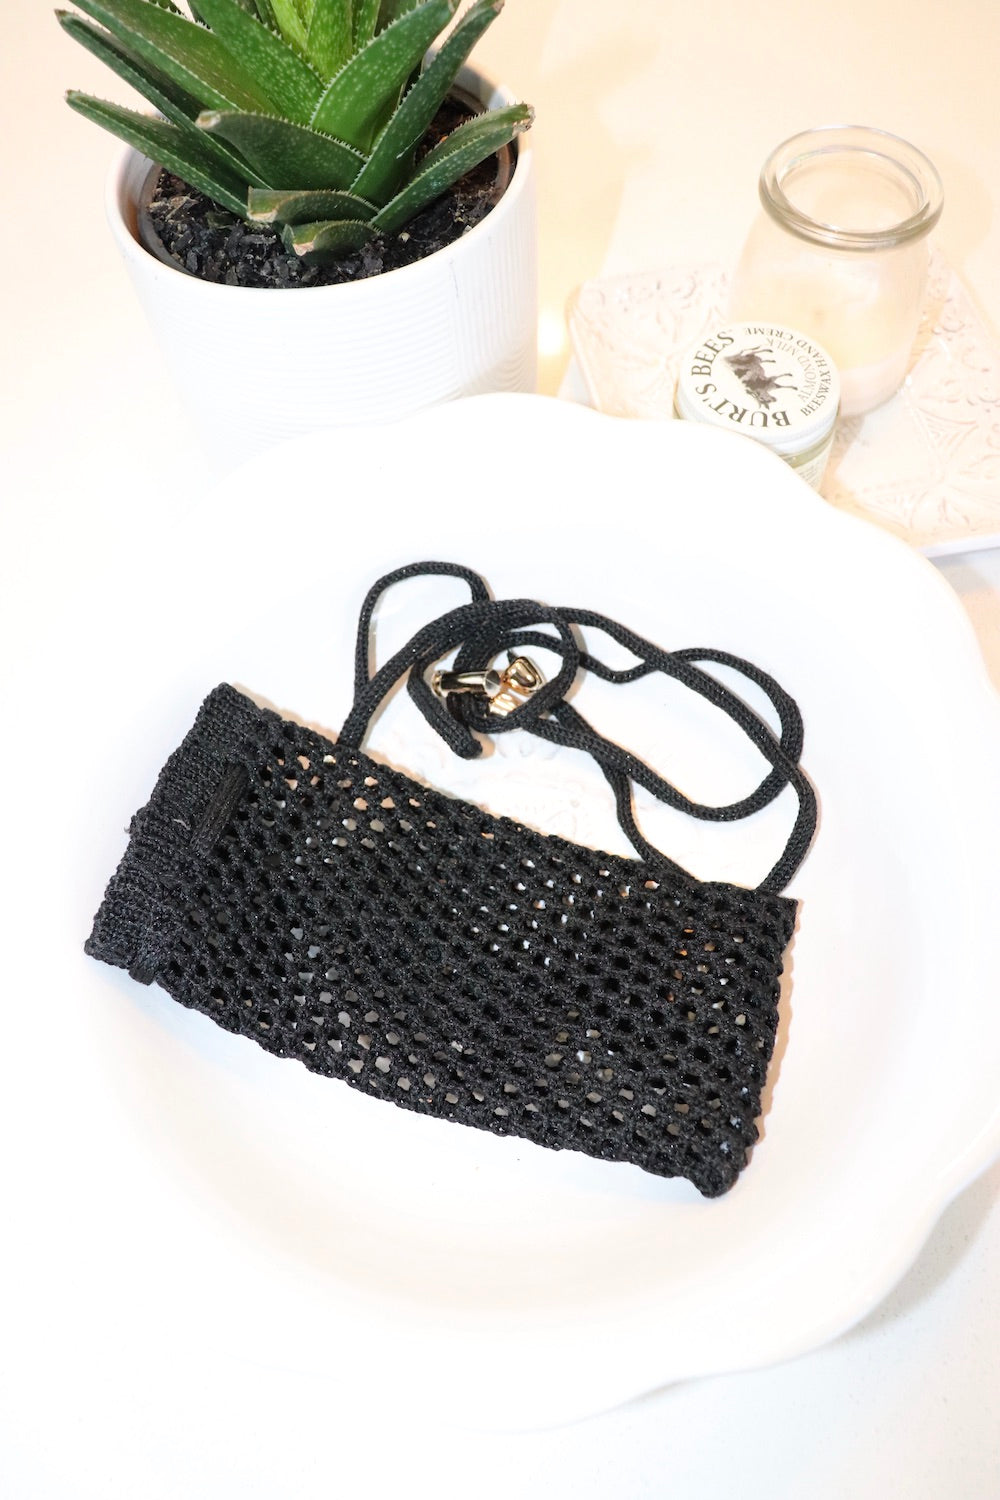 Crochet Water Bottle Bag In Black